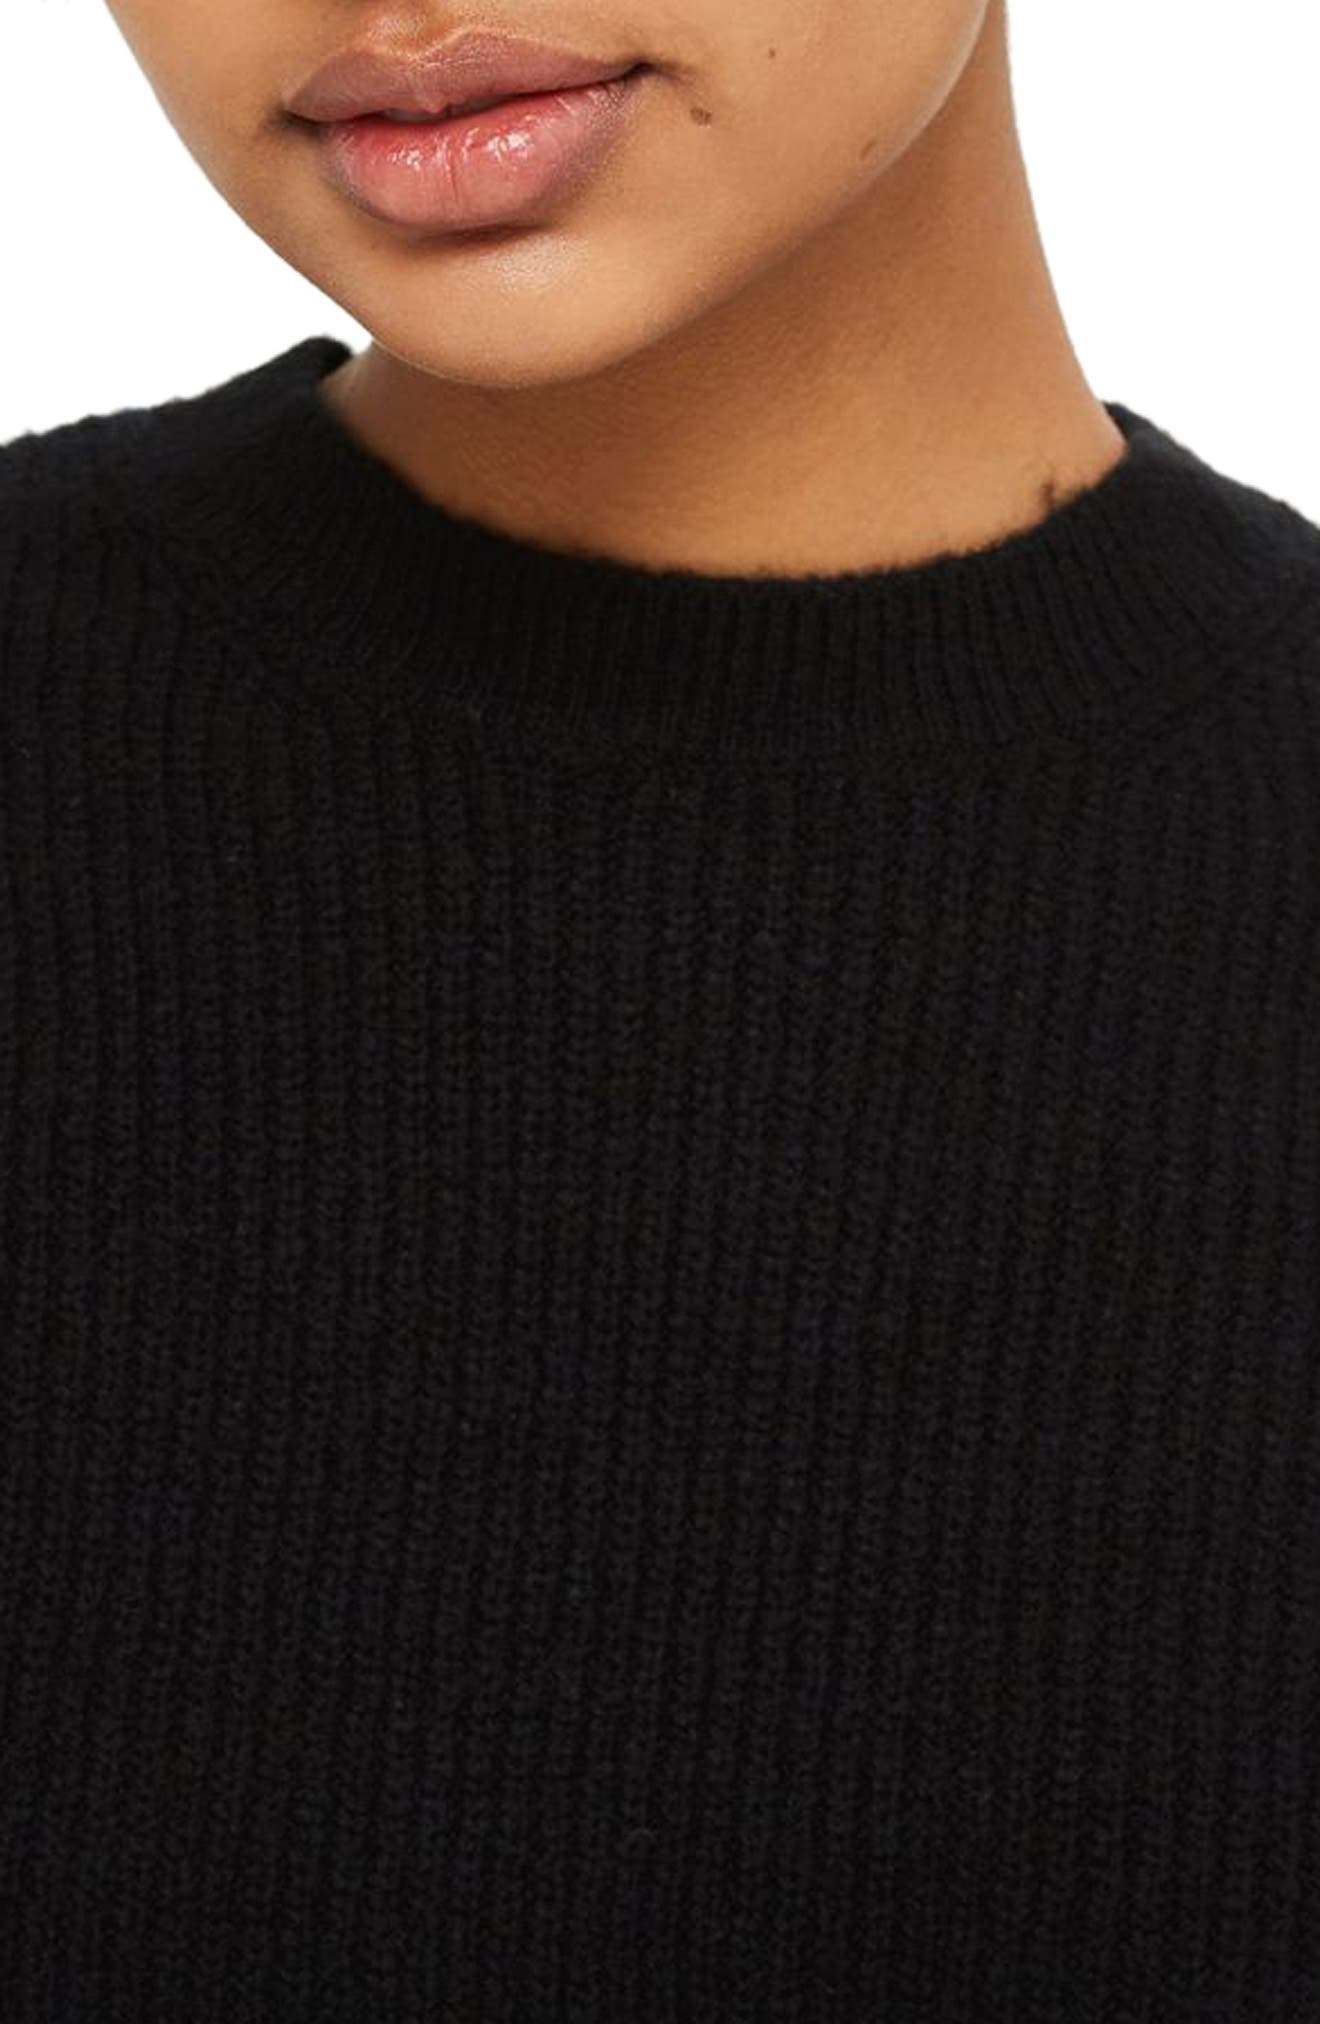 Ribbed Crewneck Sweater,                             Alternate thumbnail 3, color,                             001